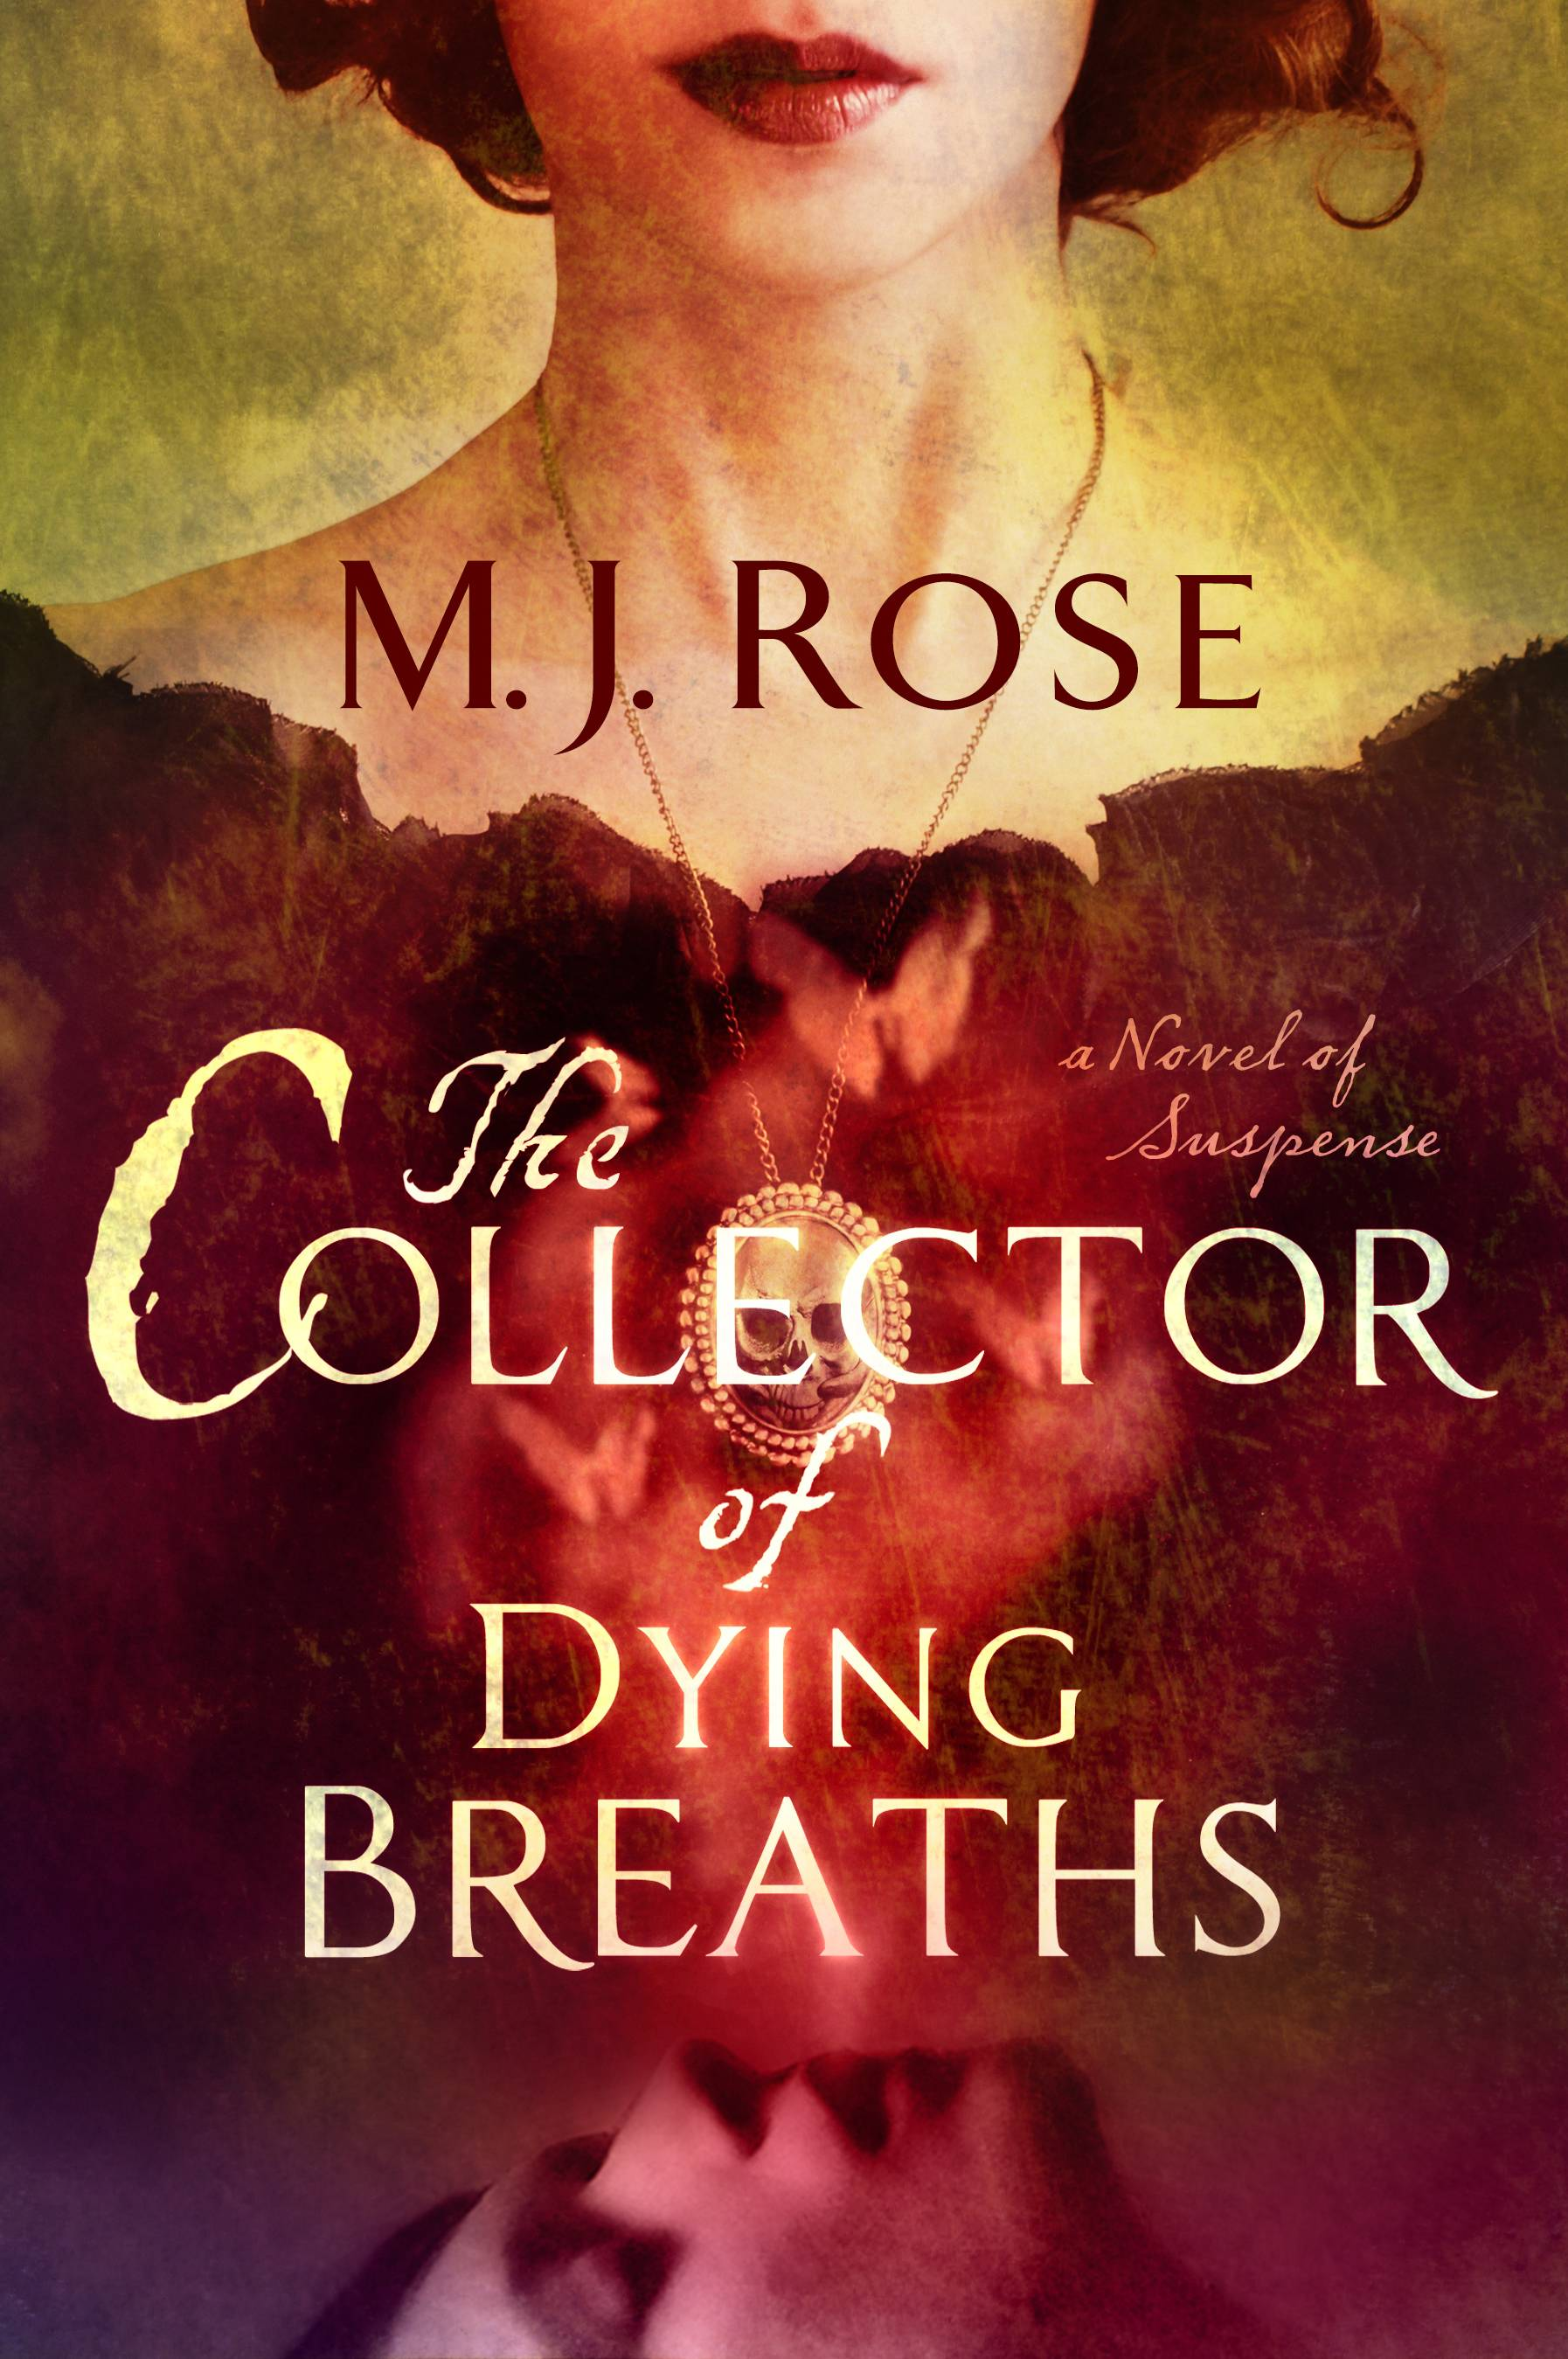 """The Collector of Dying Breaths"" by M.J. Rose is certainly original."